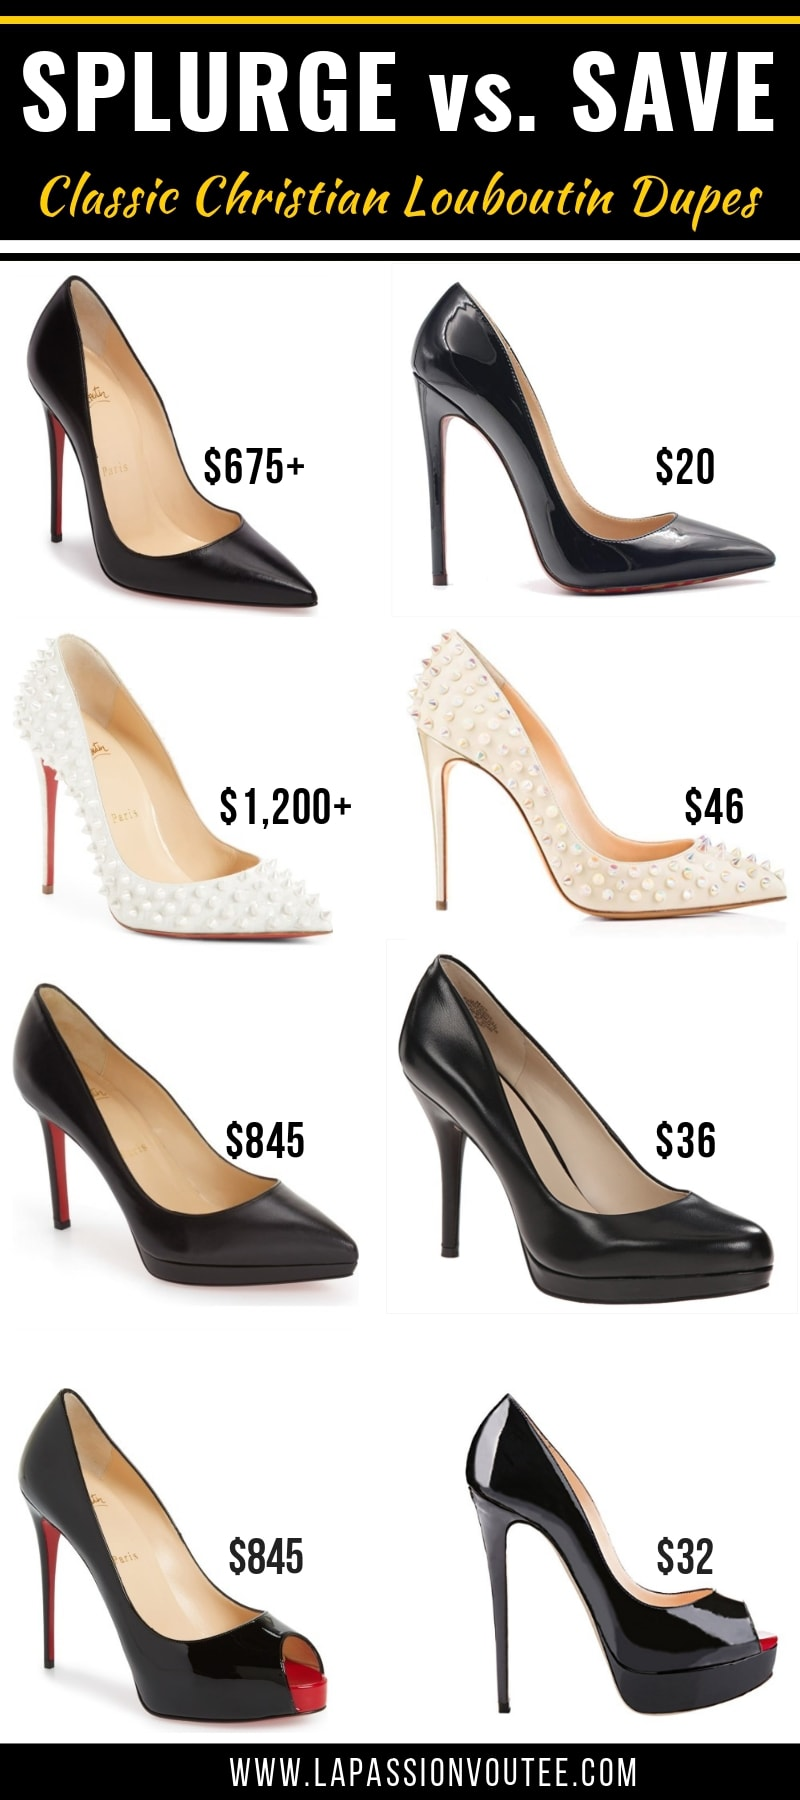 24f30353a1c 15+ Christian Louboutin shoe dupes you NEED in your closet! This is the  ultimate